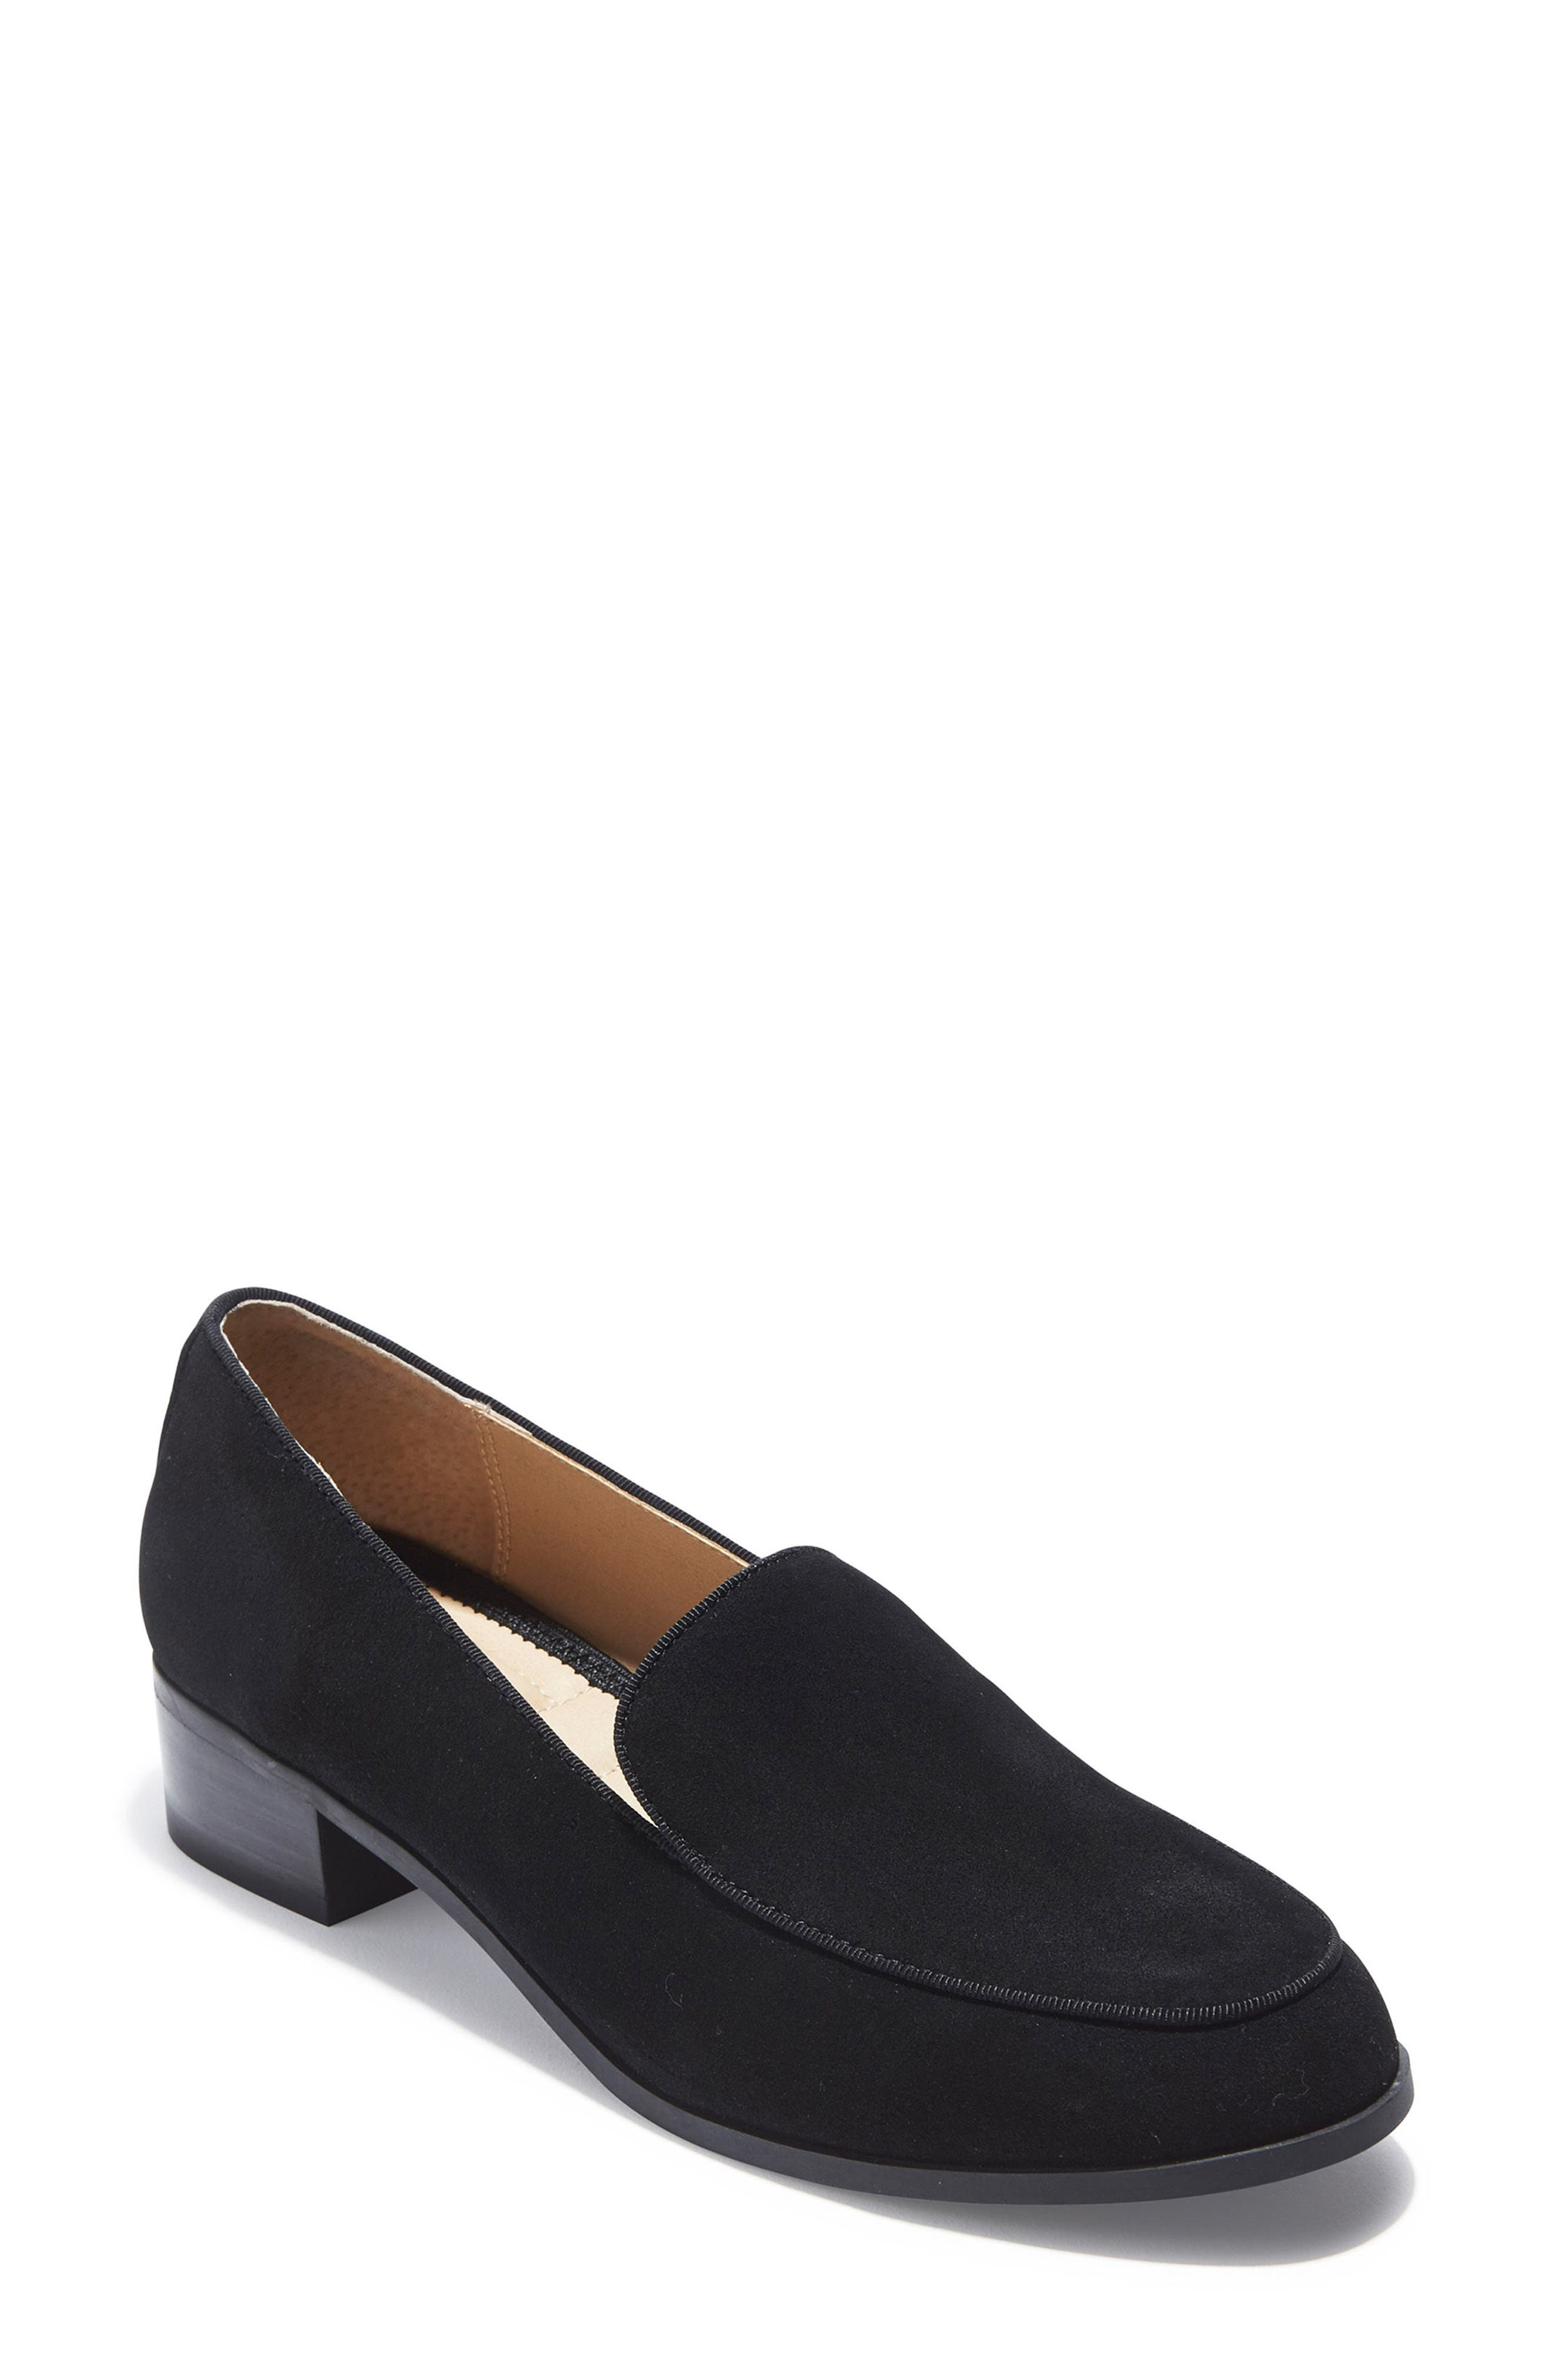 Main Image - Me Too Jazzy Loafer (Women)